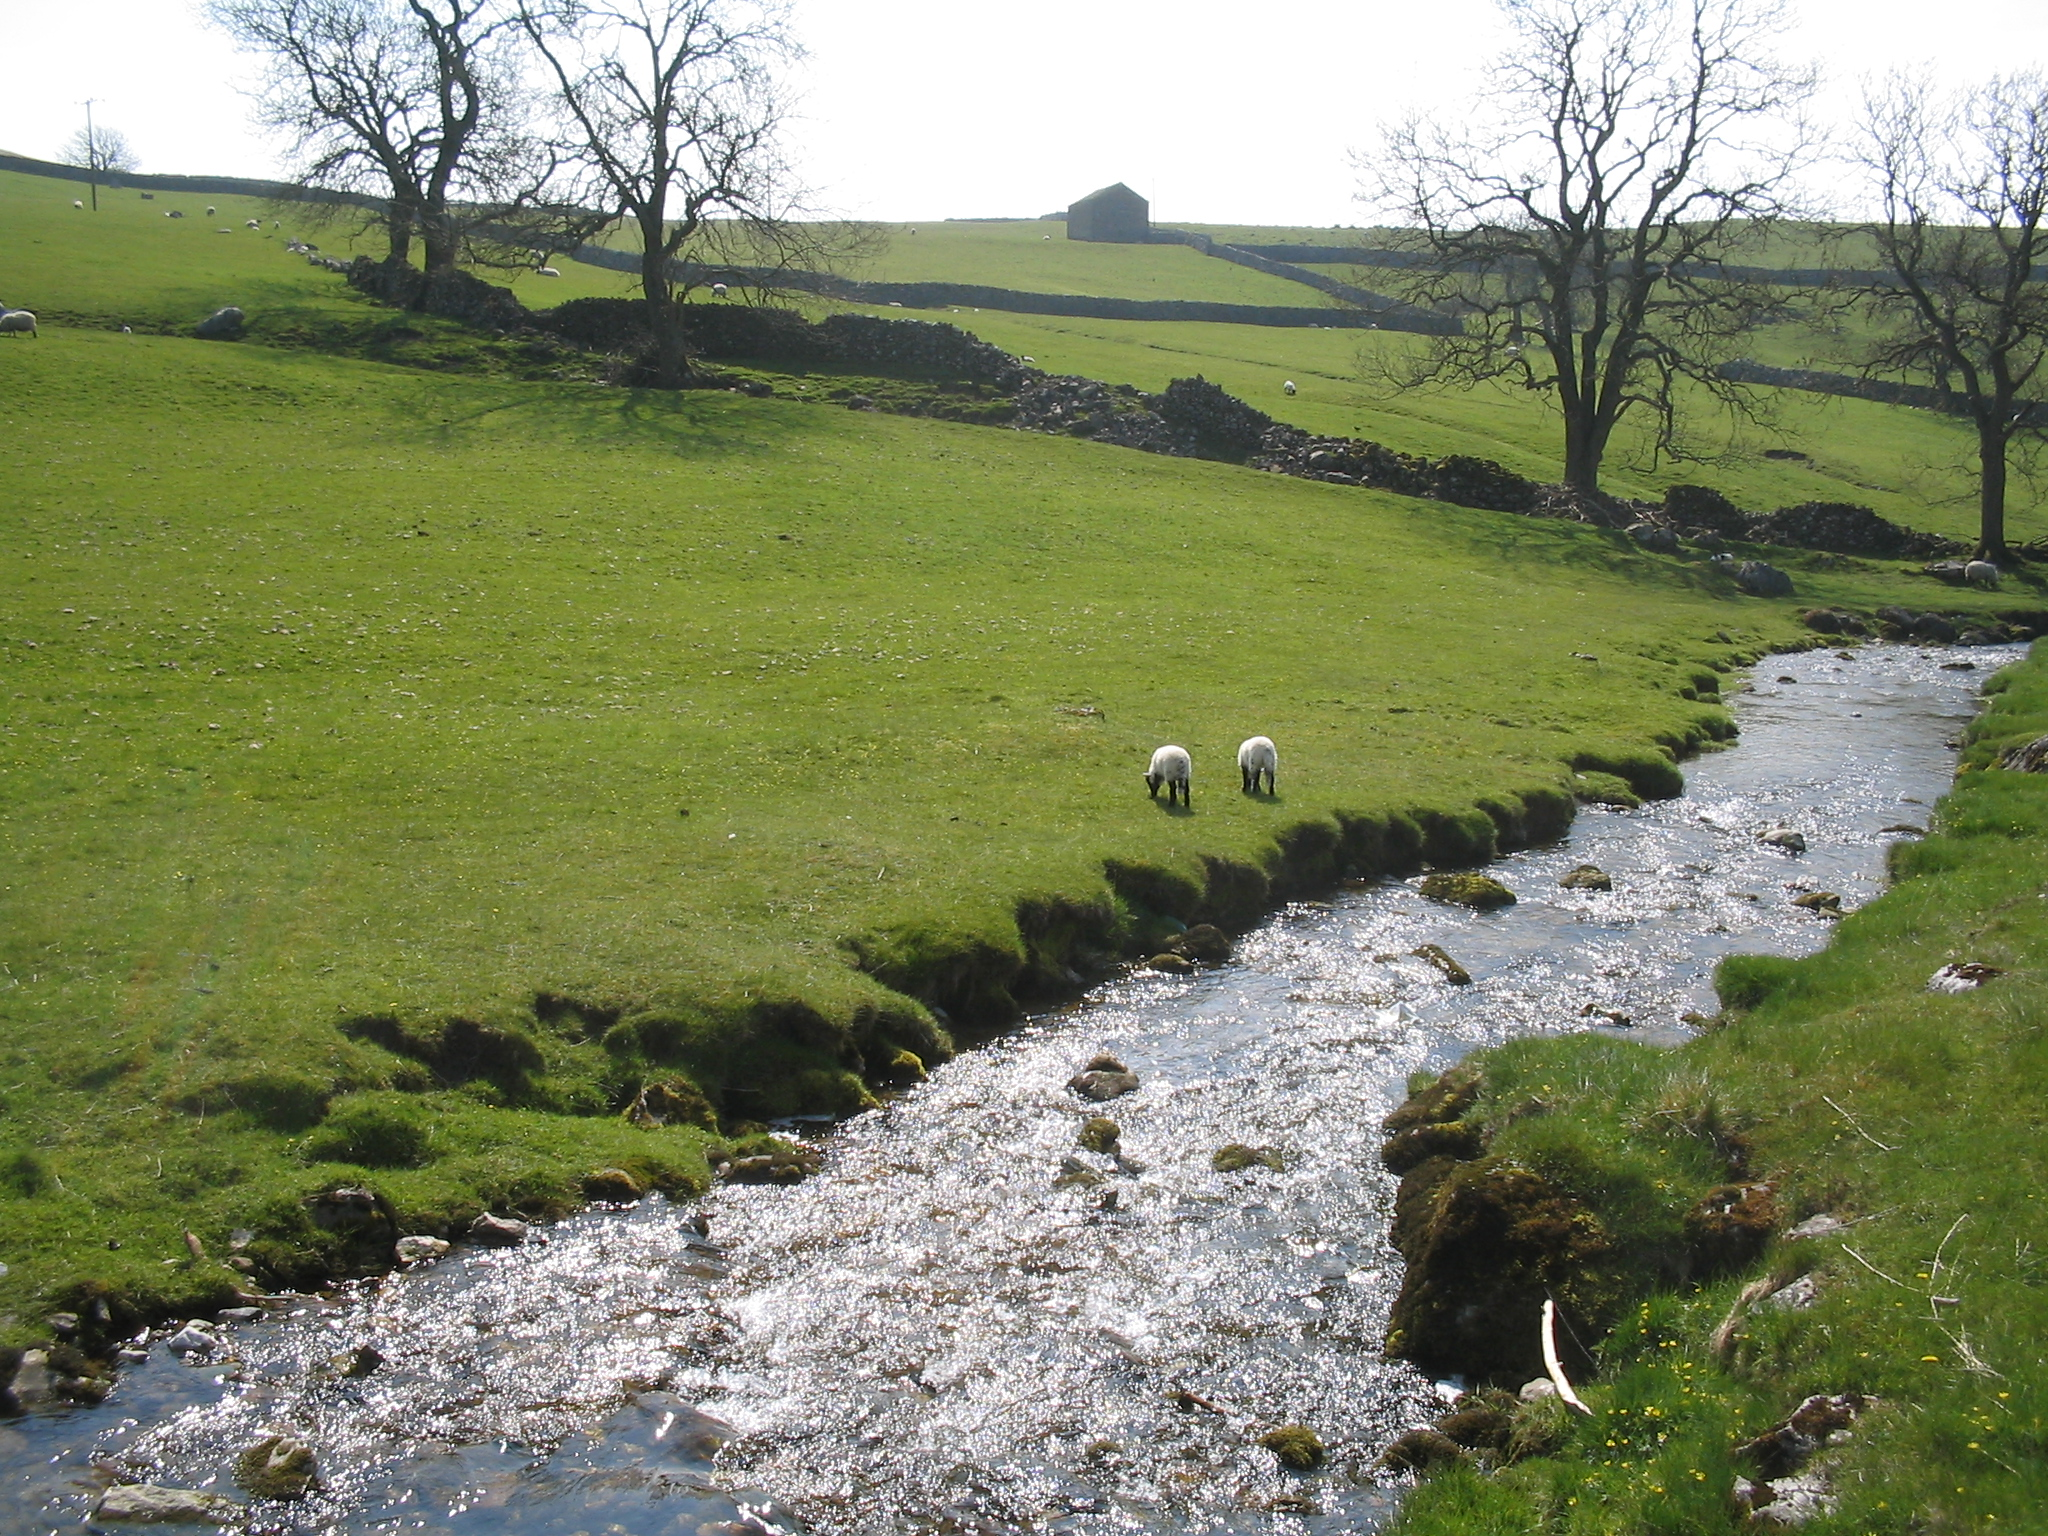 http://upload.wikimedia.org/wikipedia/commons/2/23/Gordale_Beck.jpg